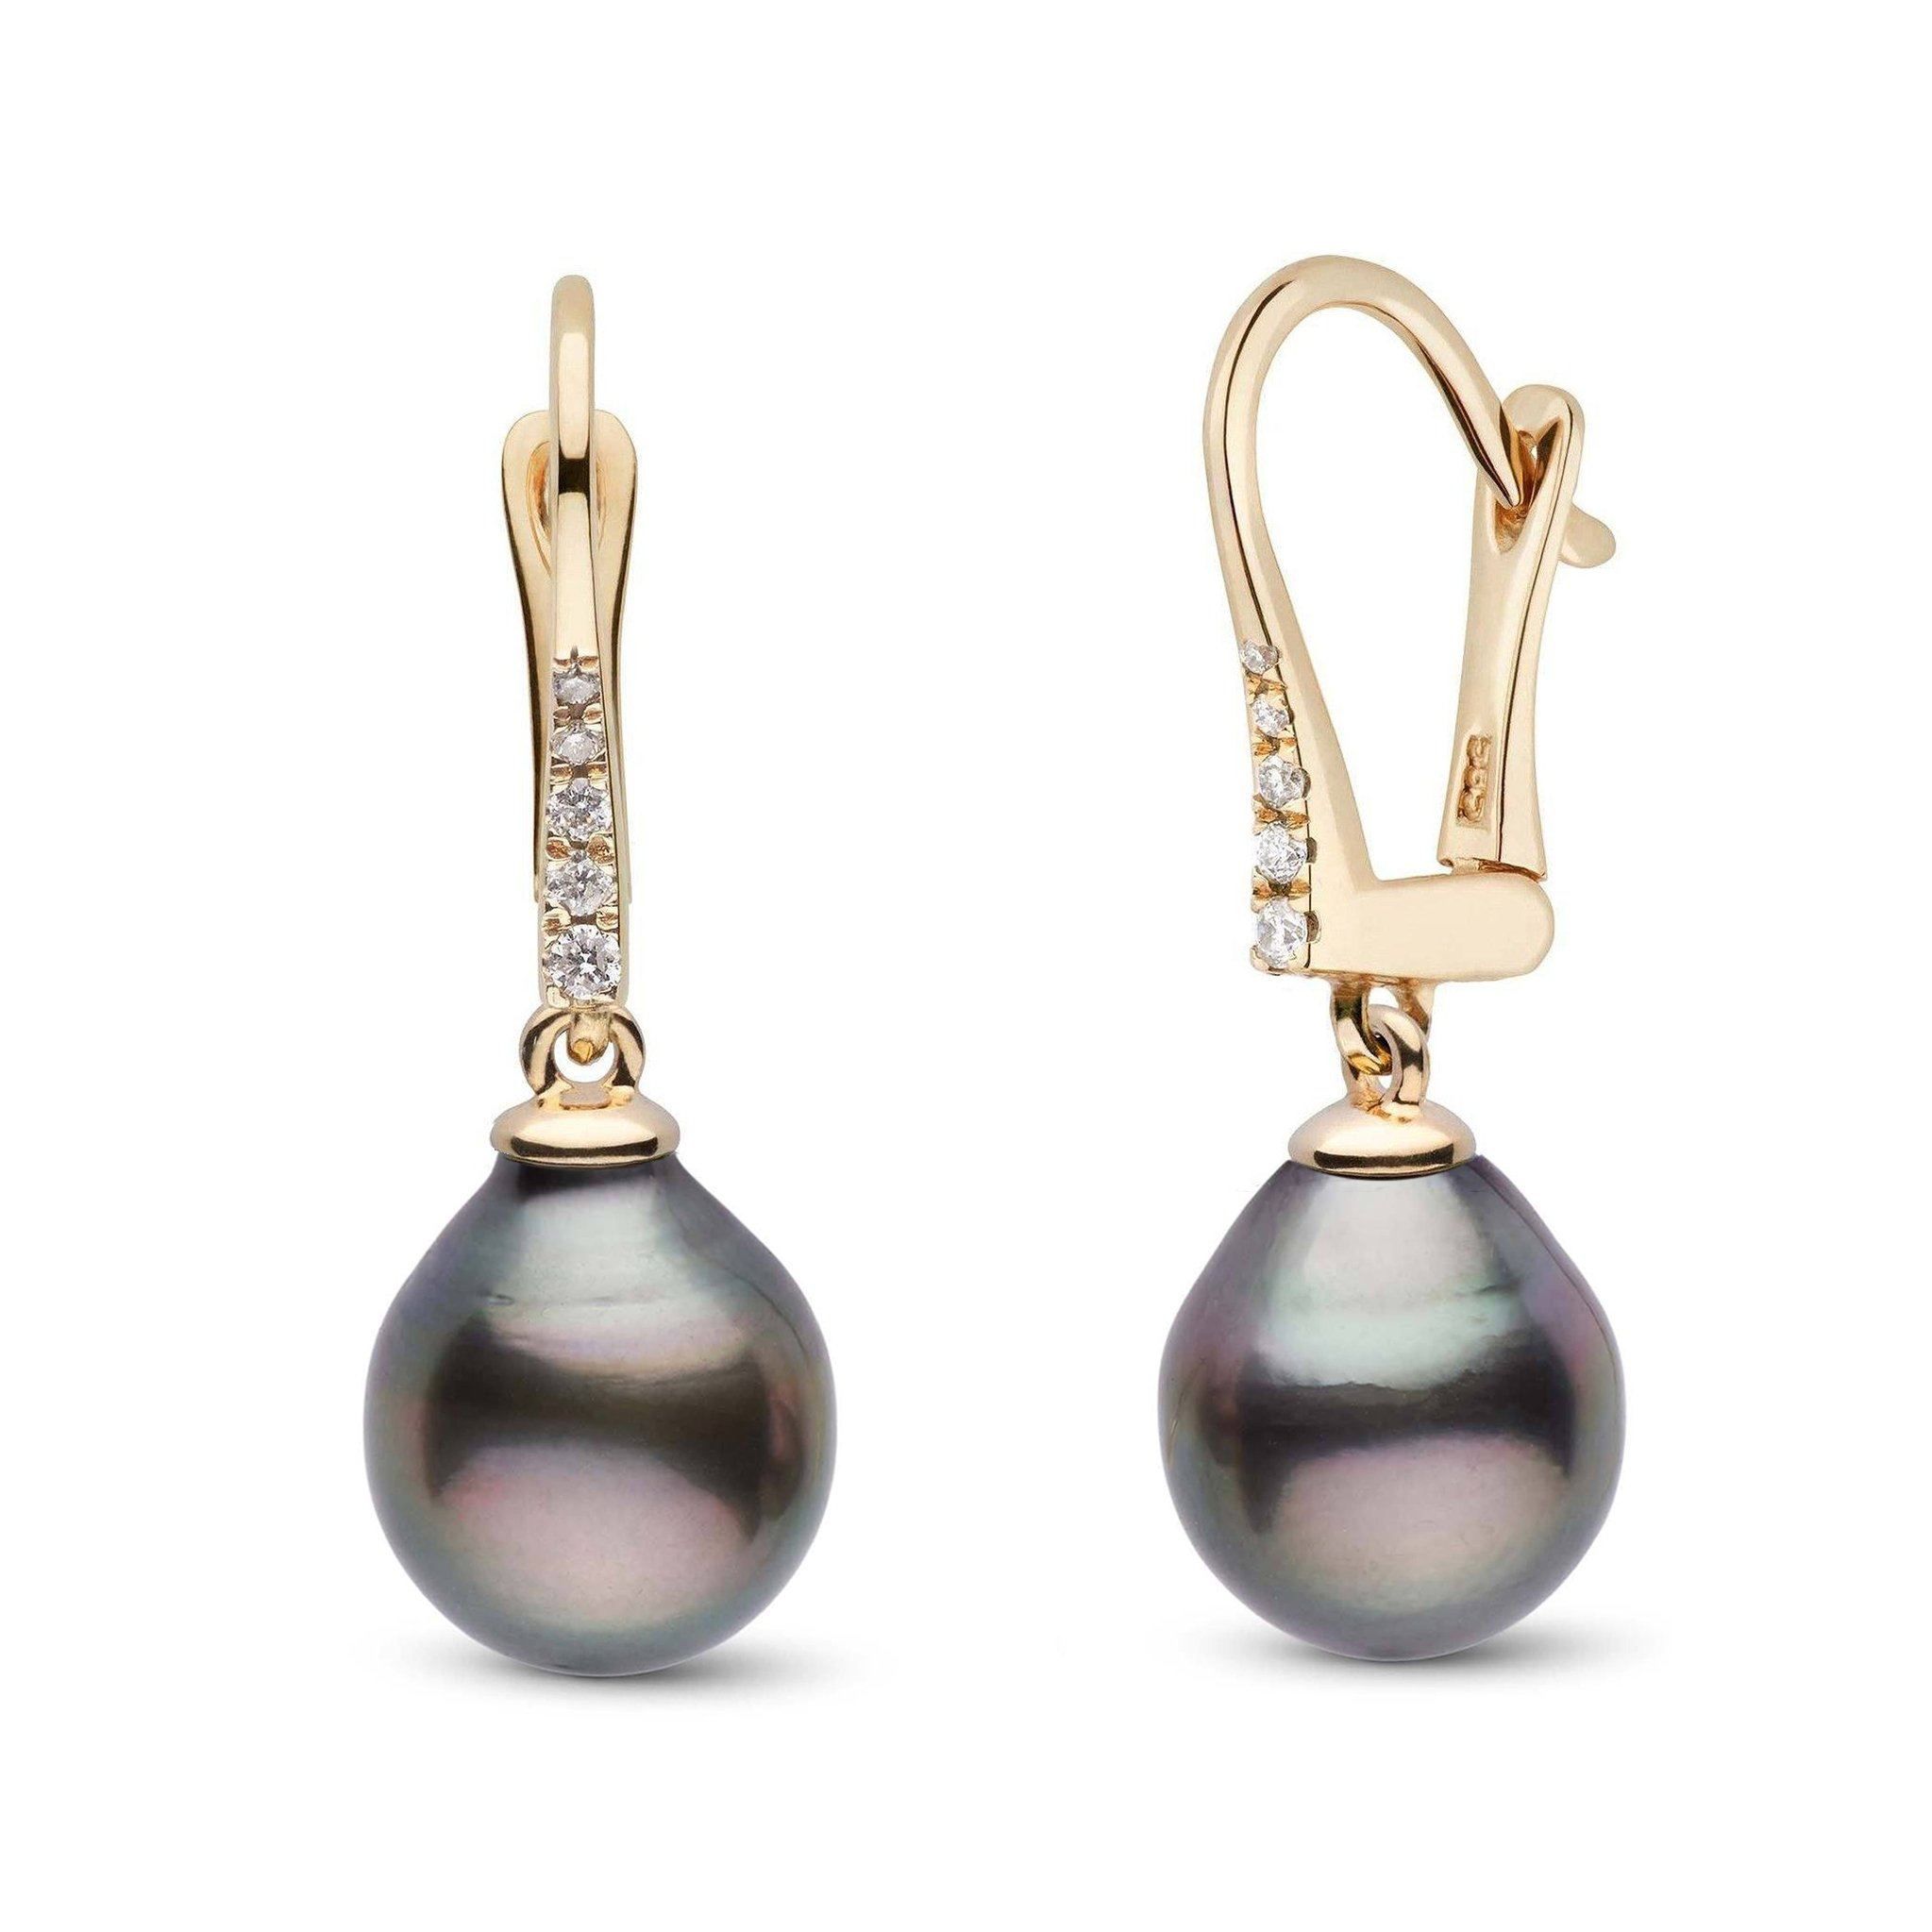 Allure Collection Tahitian Drop 9.0-10.0 mm Pearl & Diamond Dangle Earrings